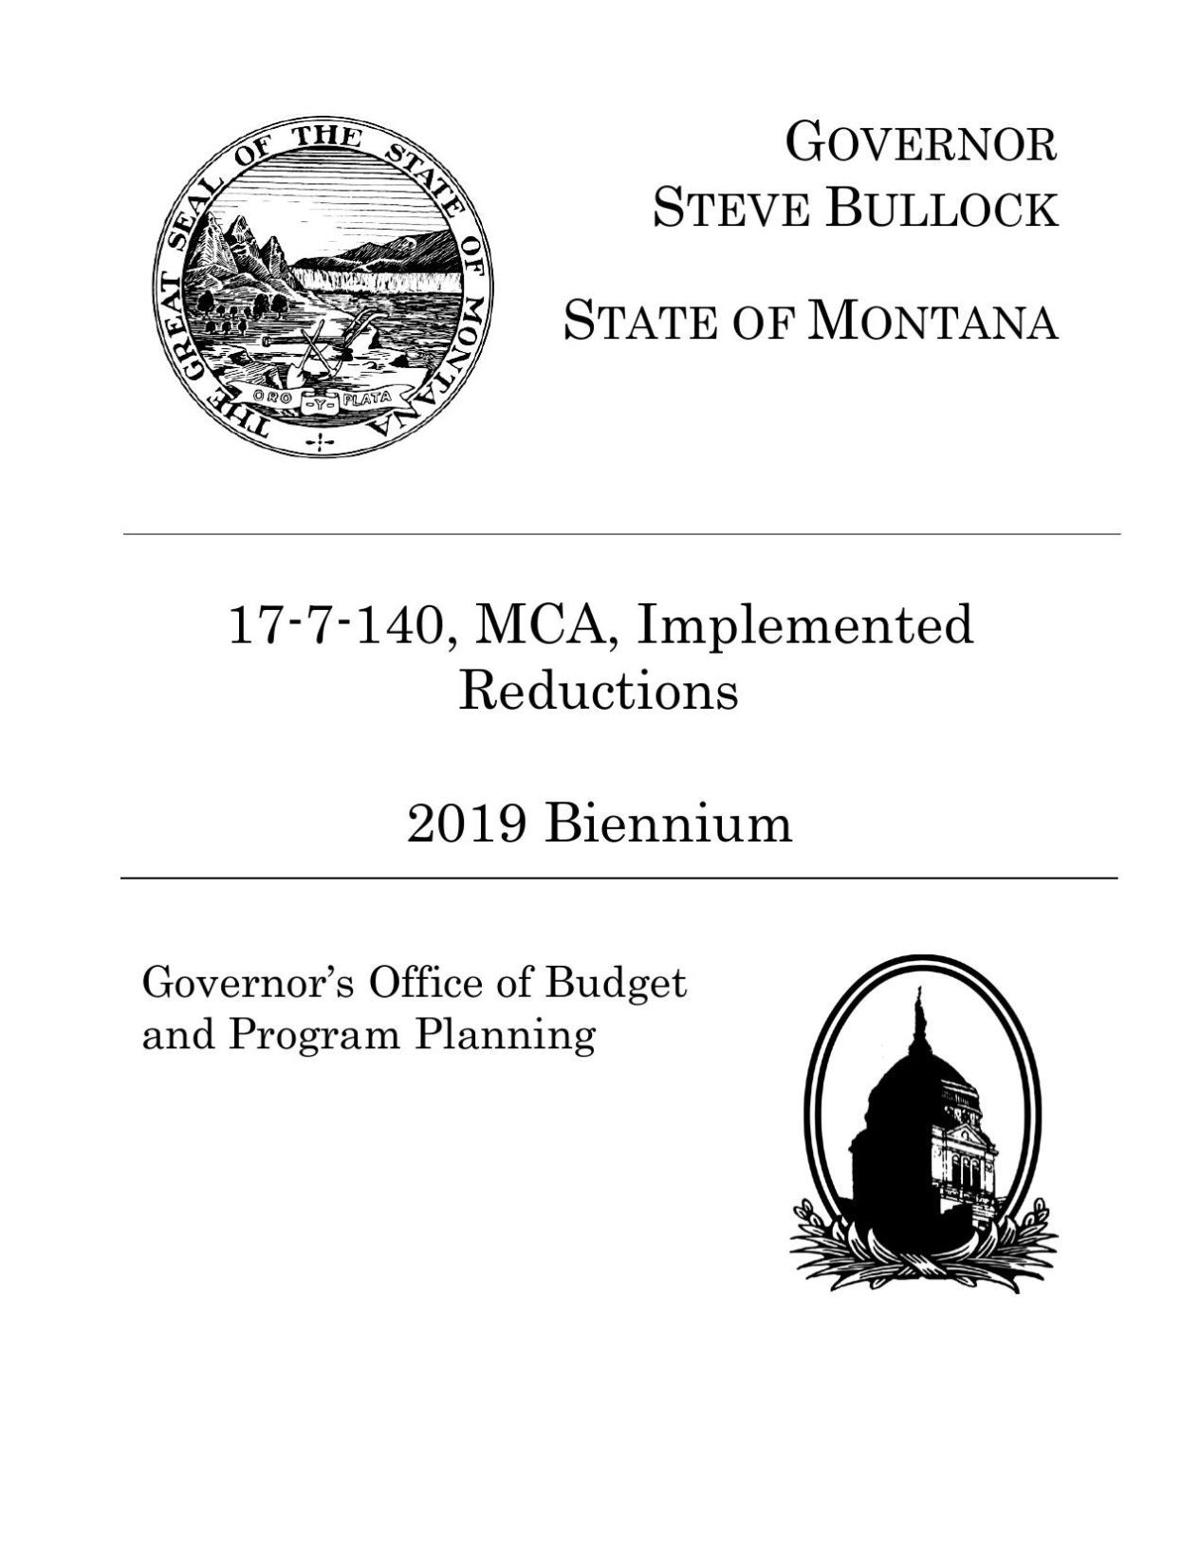 Cuts from Gov. Steve Bullock